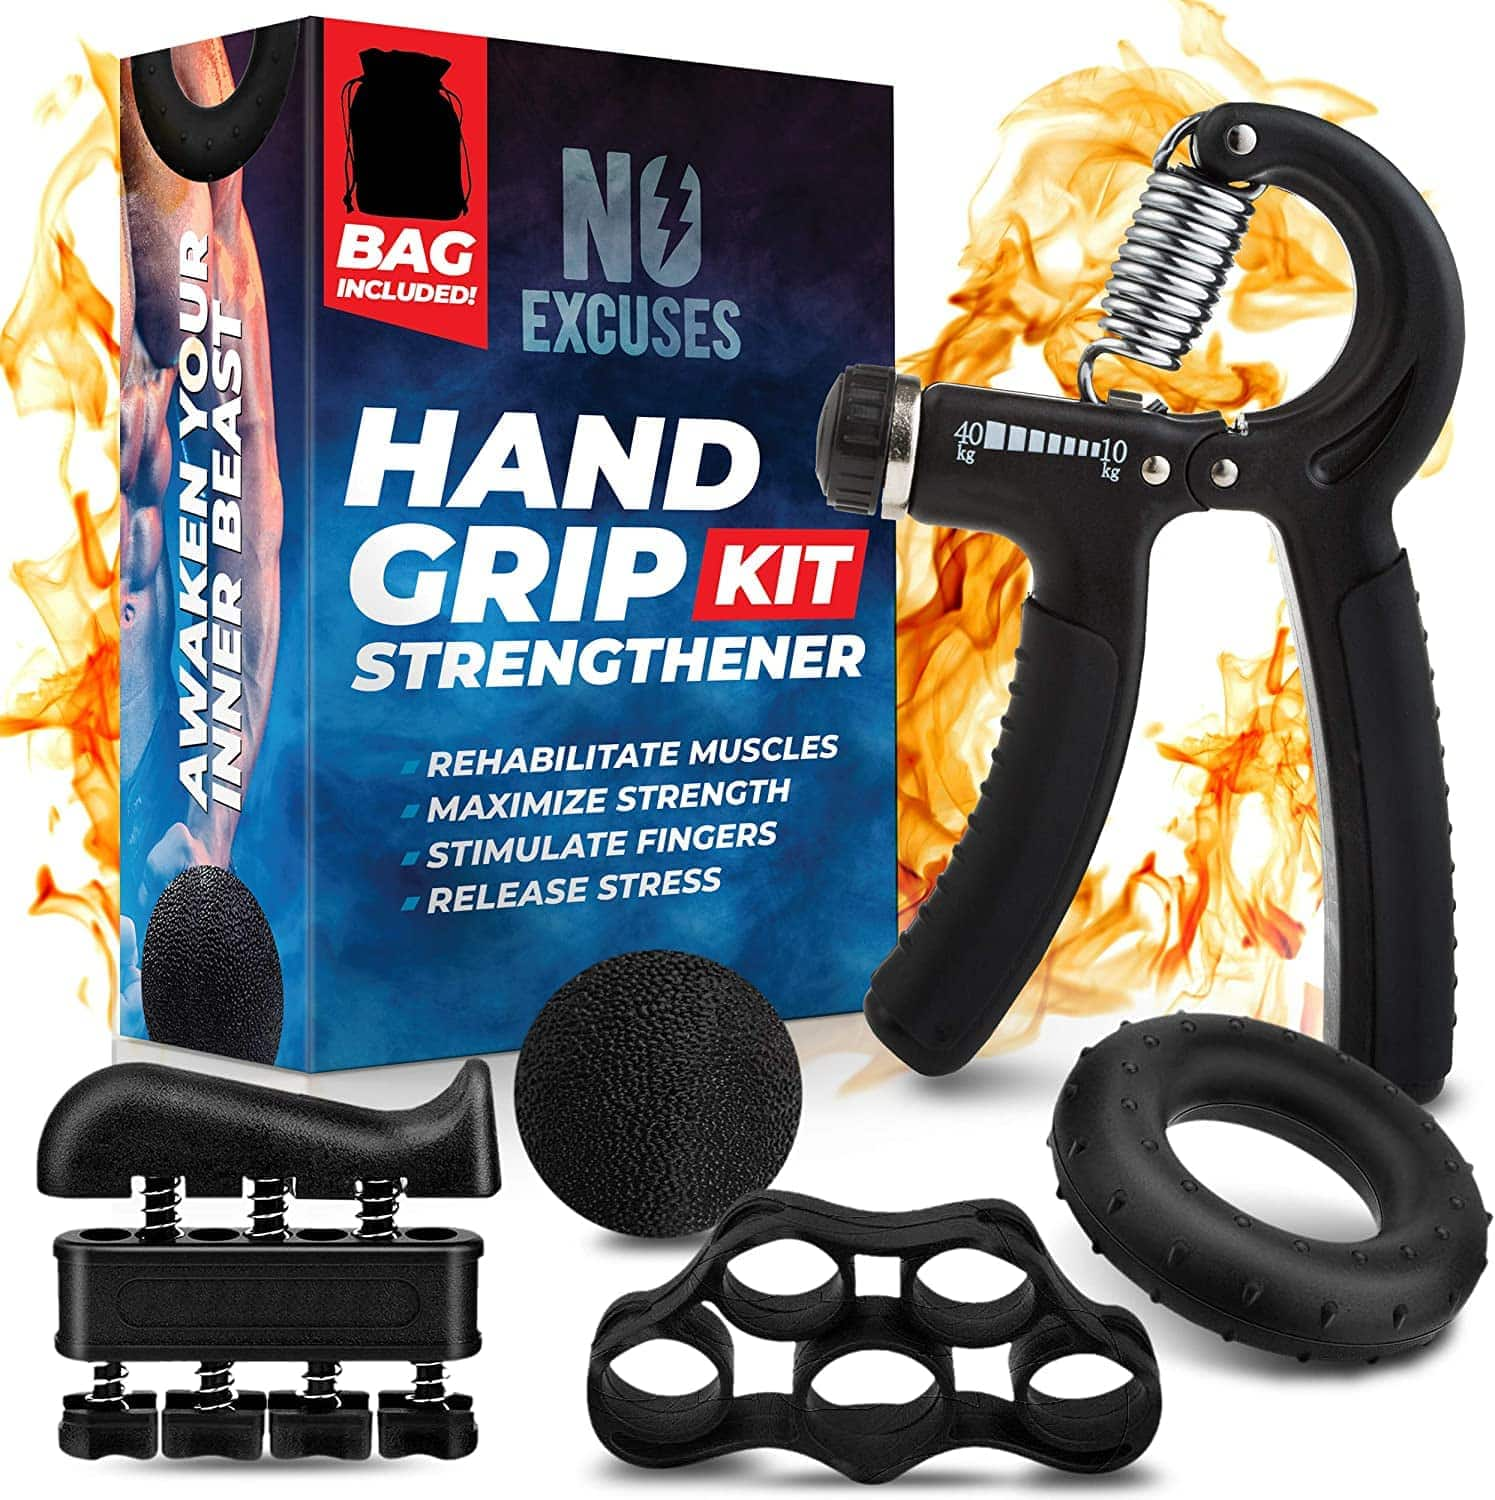 Hand Grip Strength Trainer Kit - $12 + Free Shipping on Prime or Orders $25+